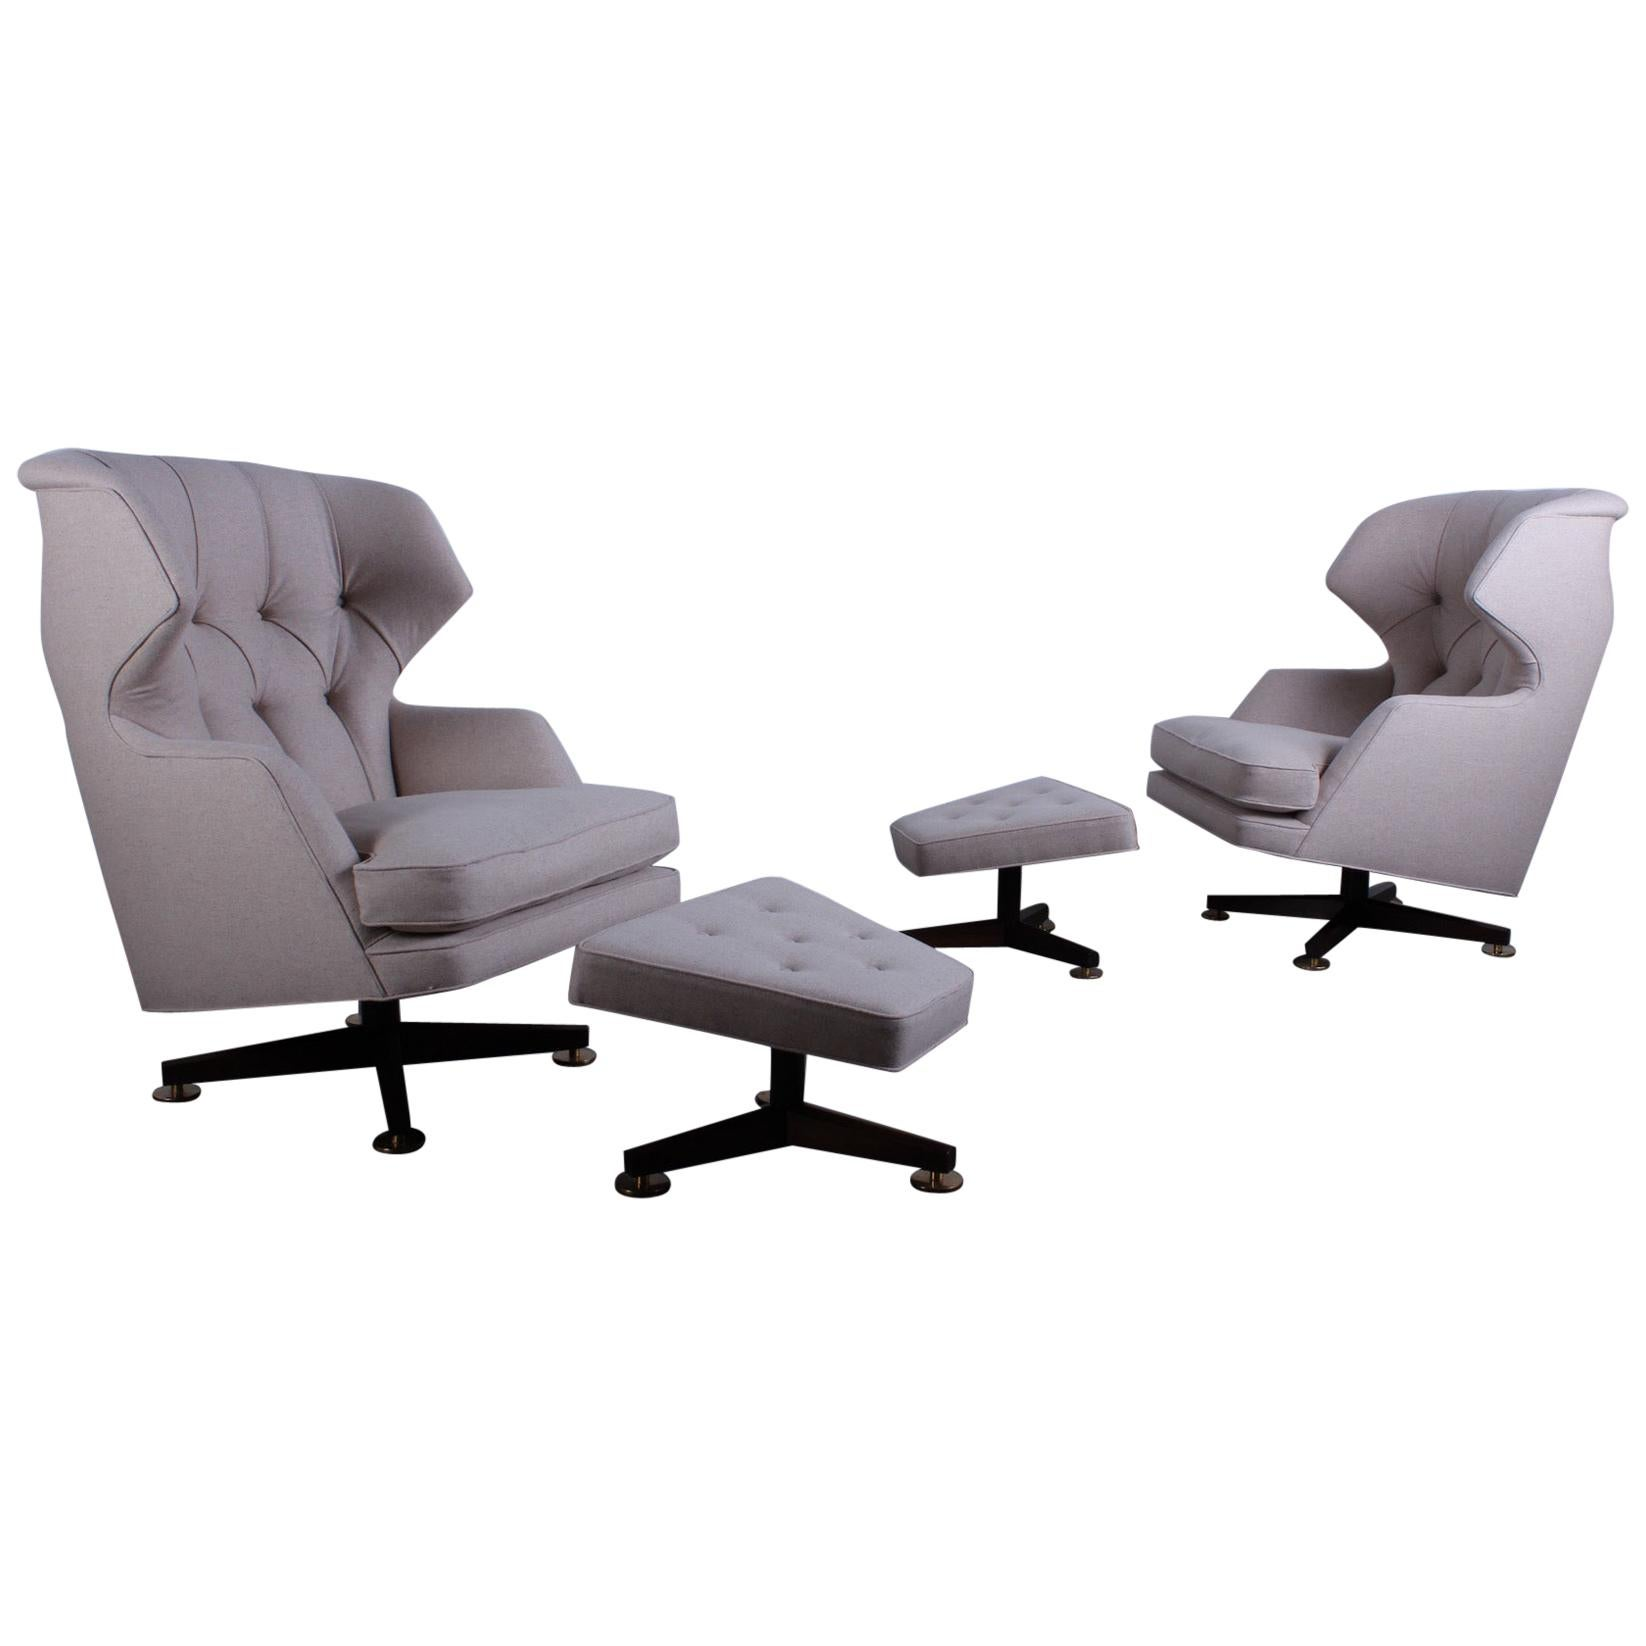 """Swiveling """"Janus"""" Lounge Chairs and Ottomans by Edward Wormley for Dunbar"""